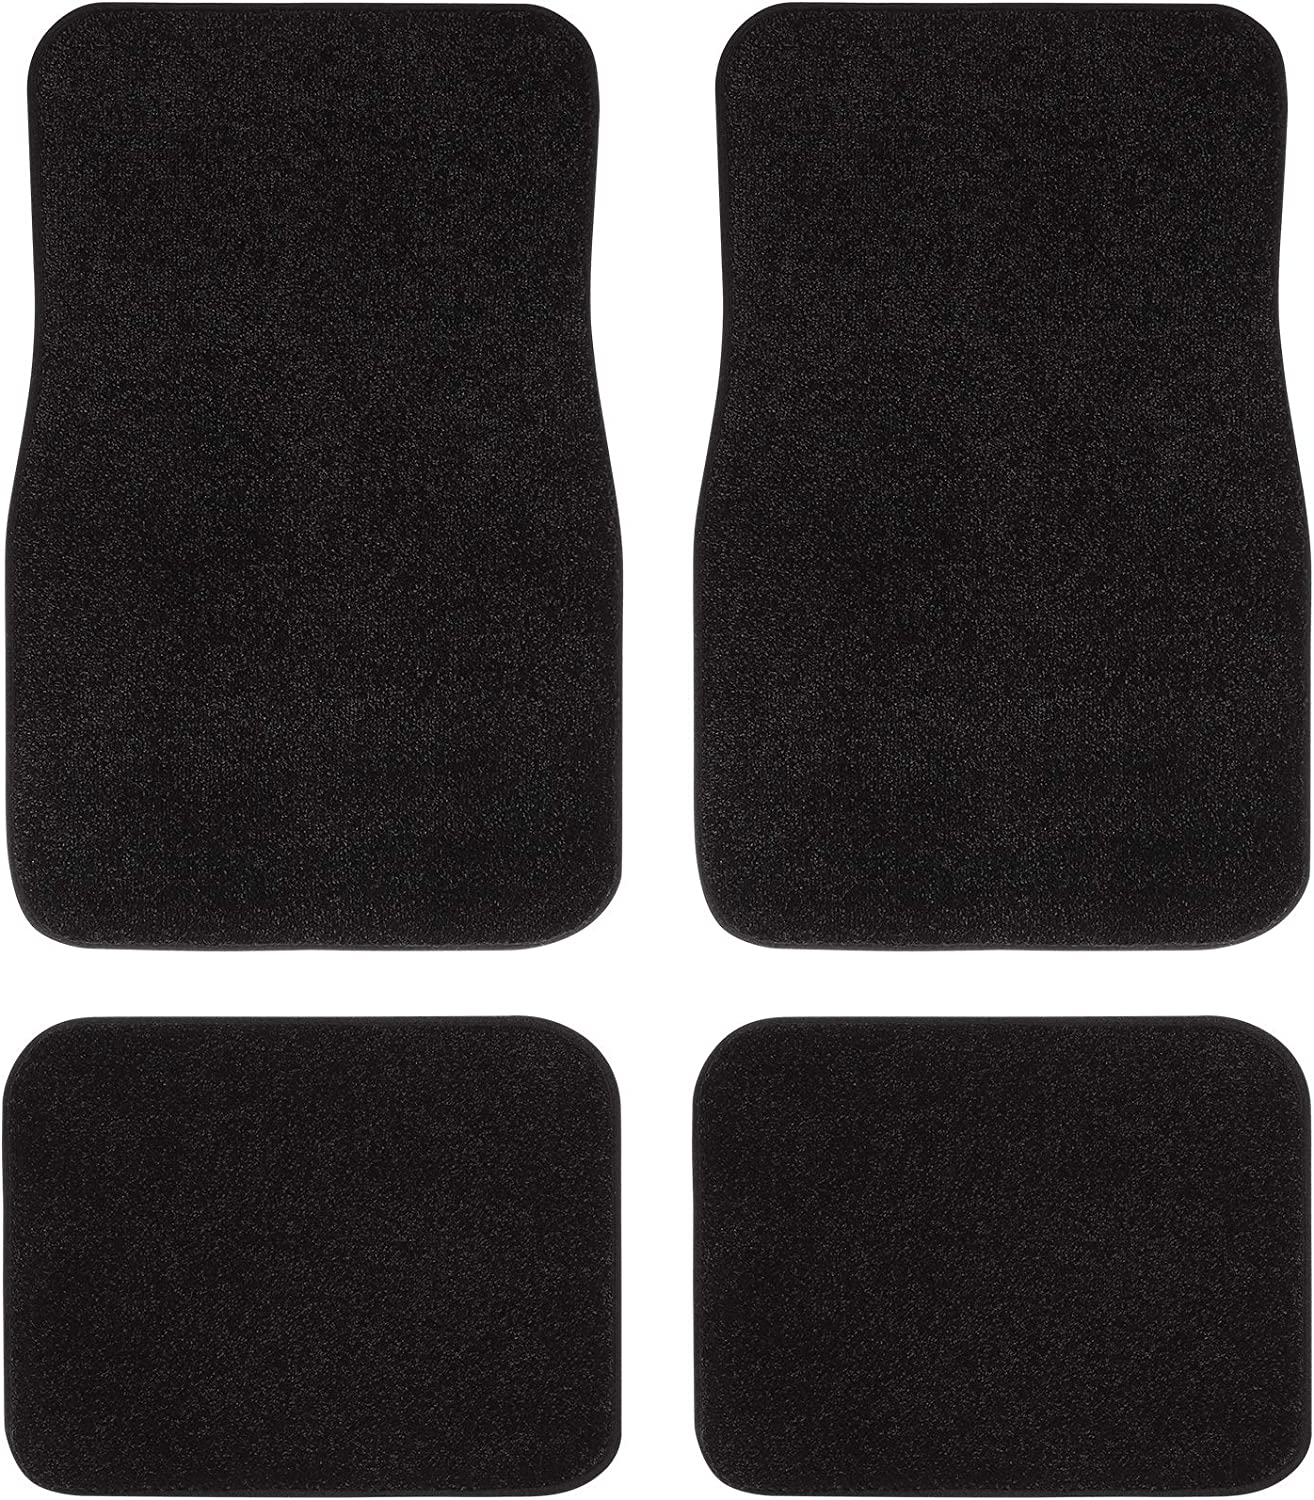 QYMATS All Weather Carpet Ranking TOP14 Vehicle Car SUV Mats Max 67% OFF Floor Universal-